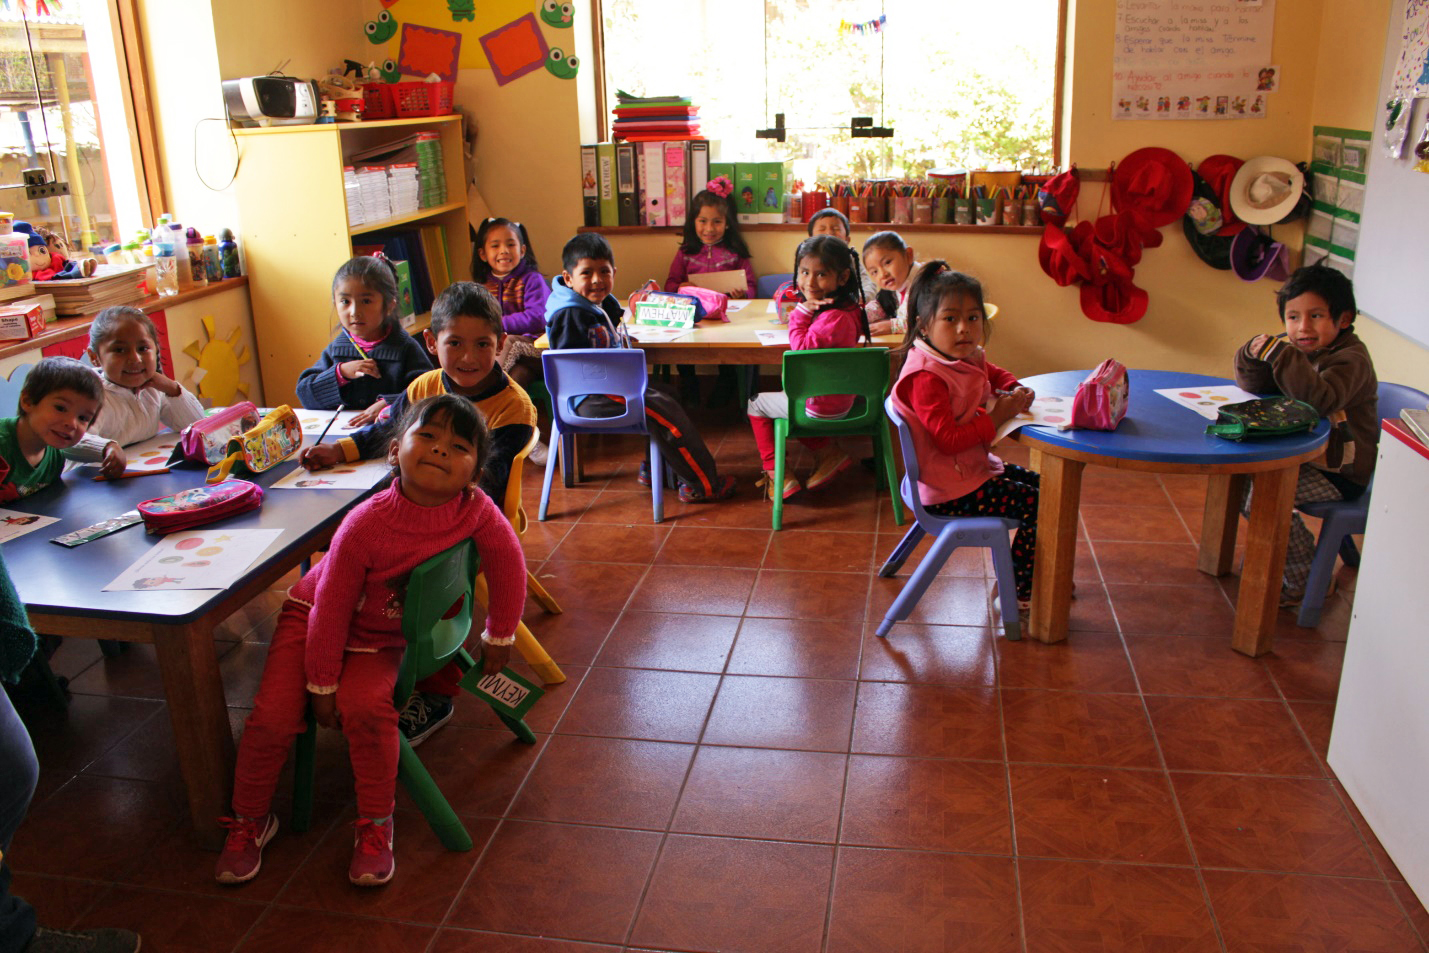 Students at the Sol y Luna school